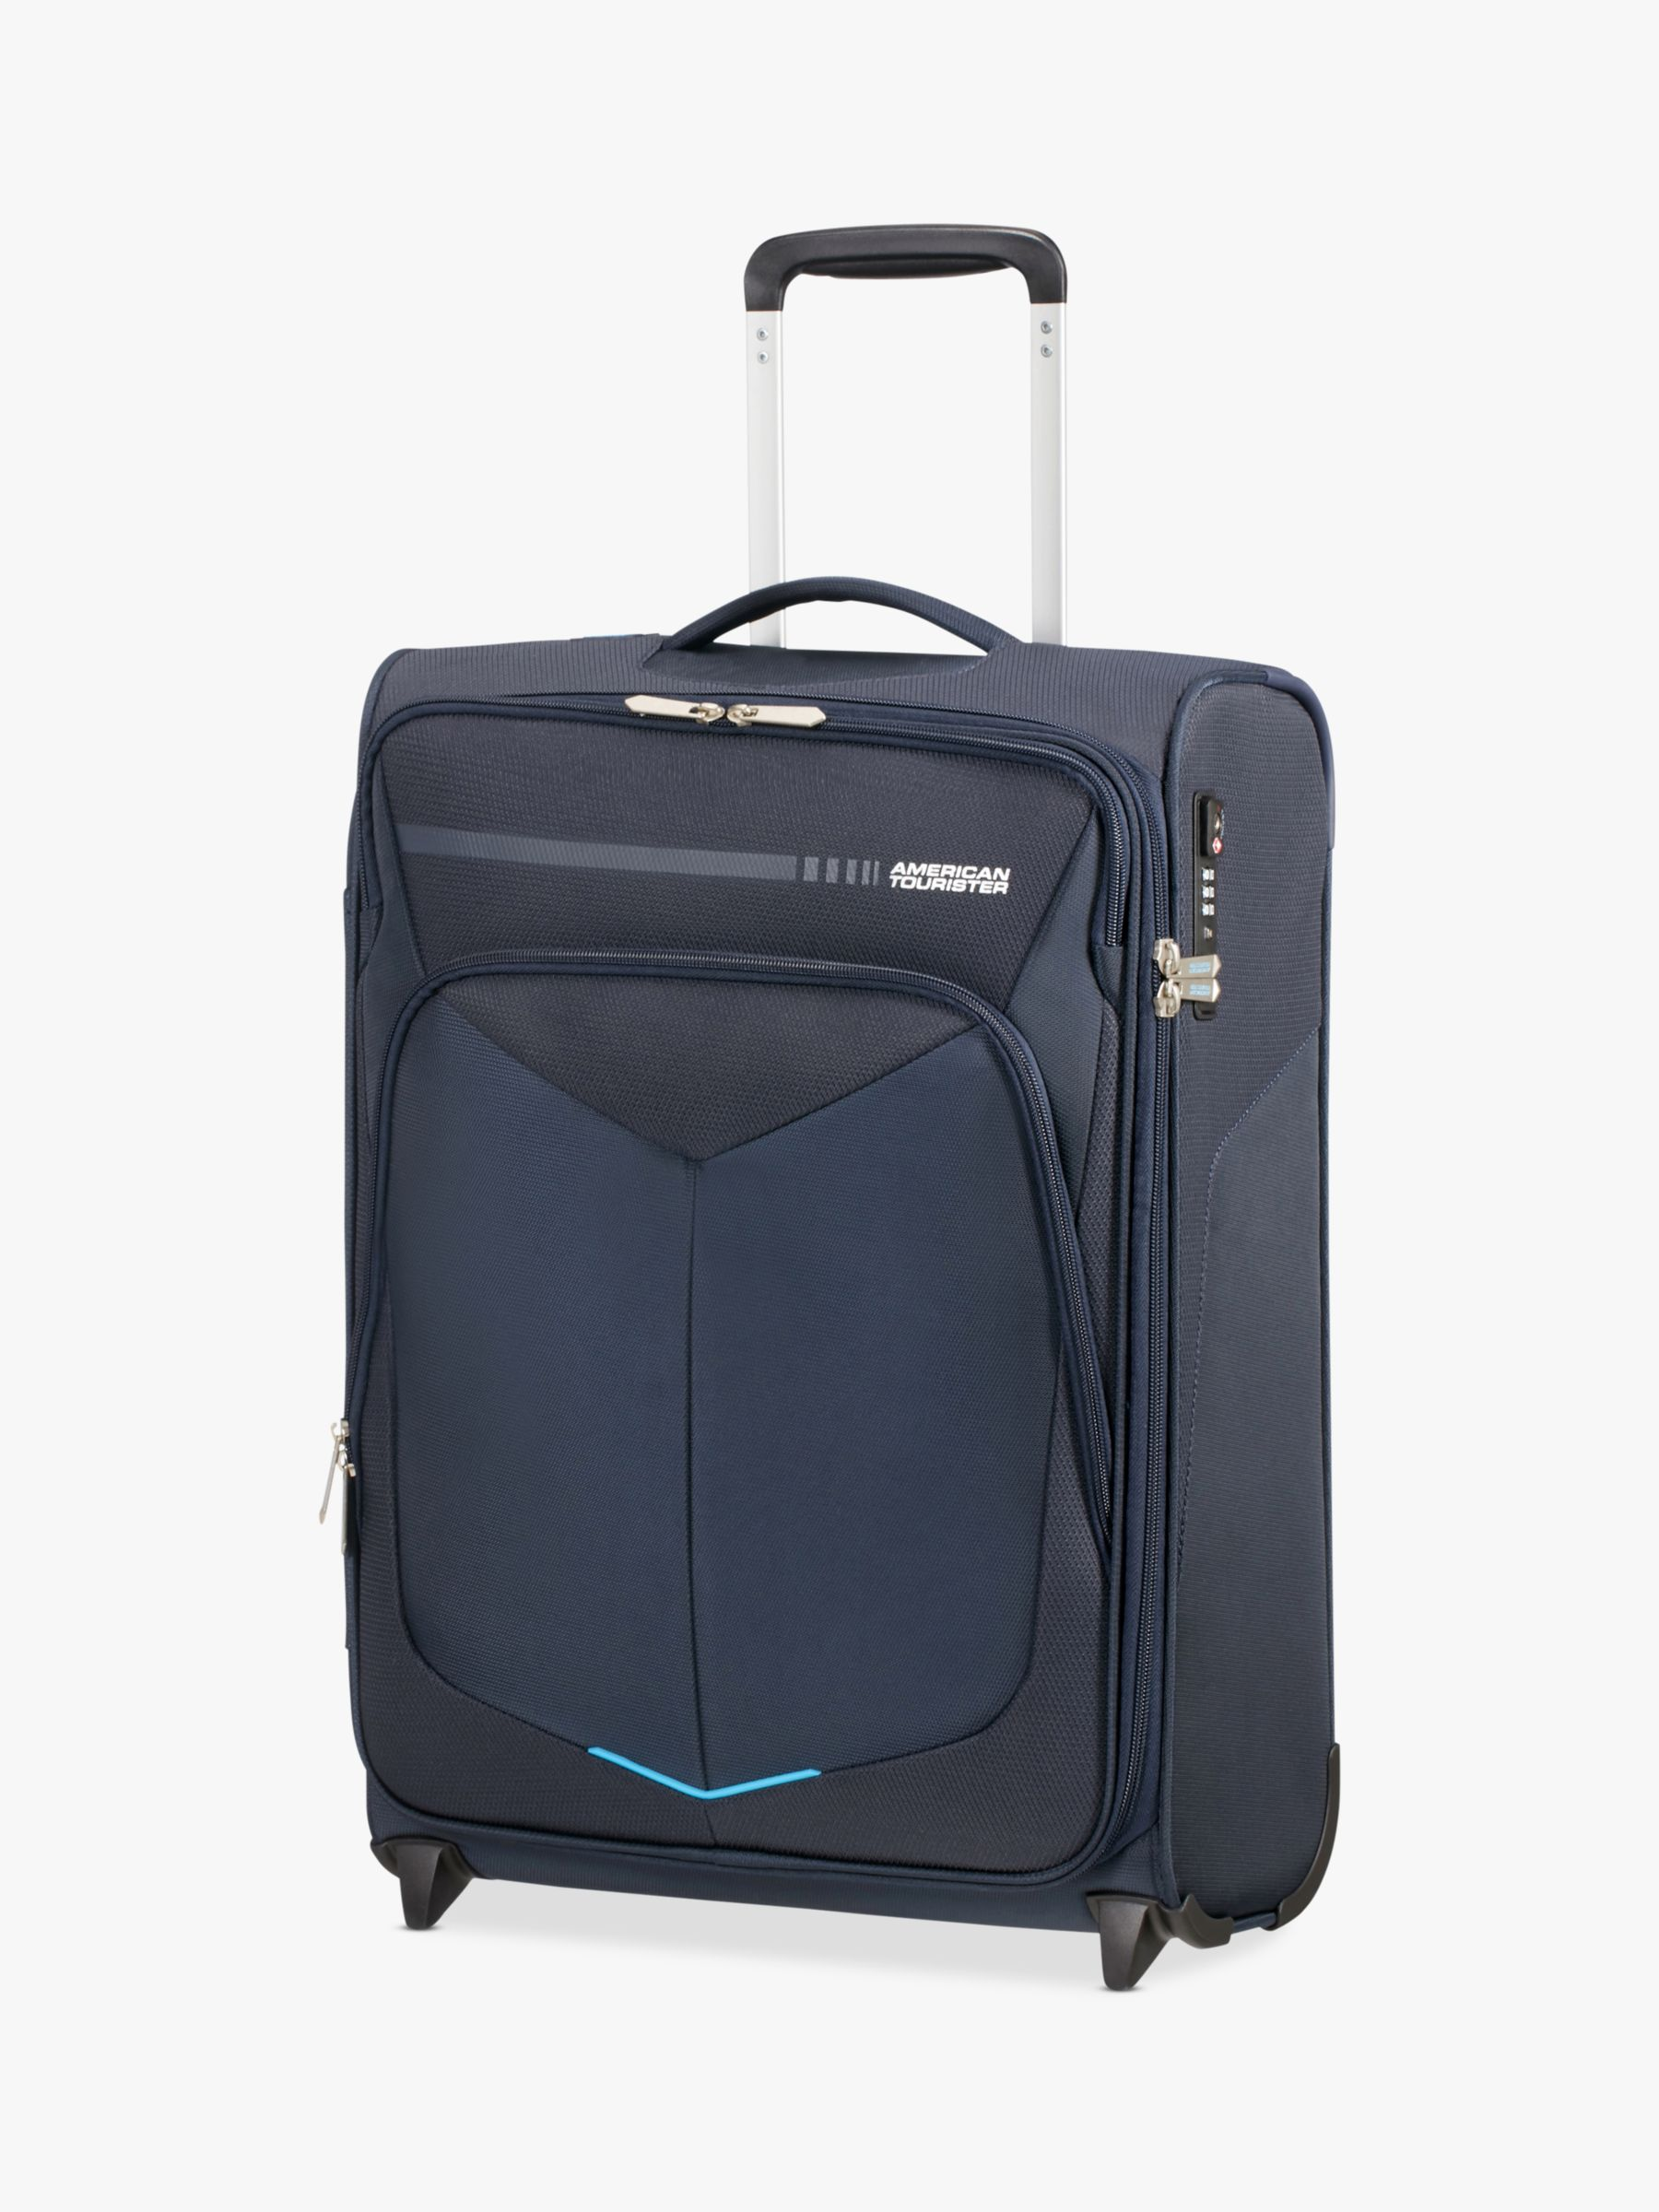 American Tourister American Tourister Summer Funk 55cm 2-Wheel Upright Cabin Case, Navy